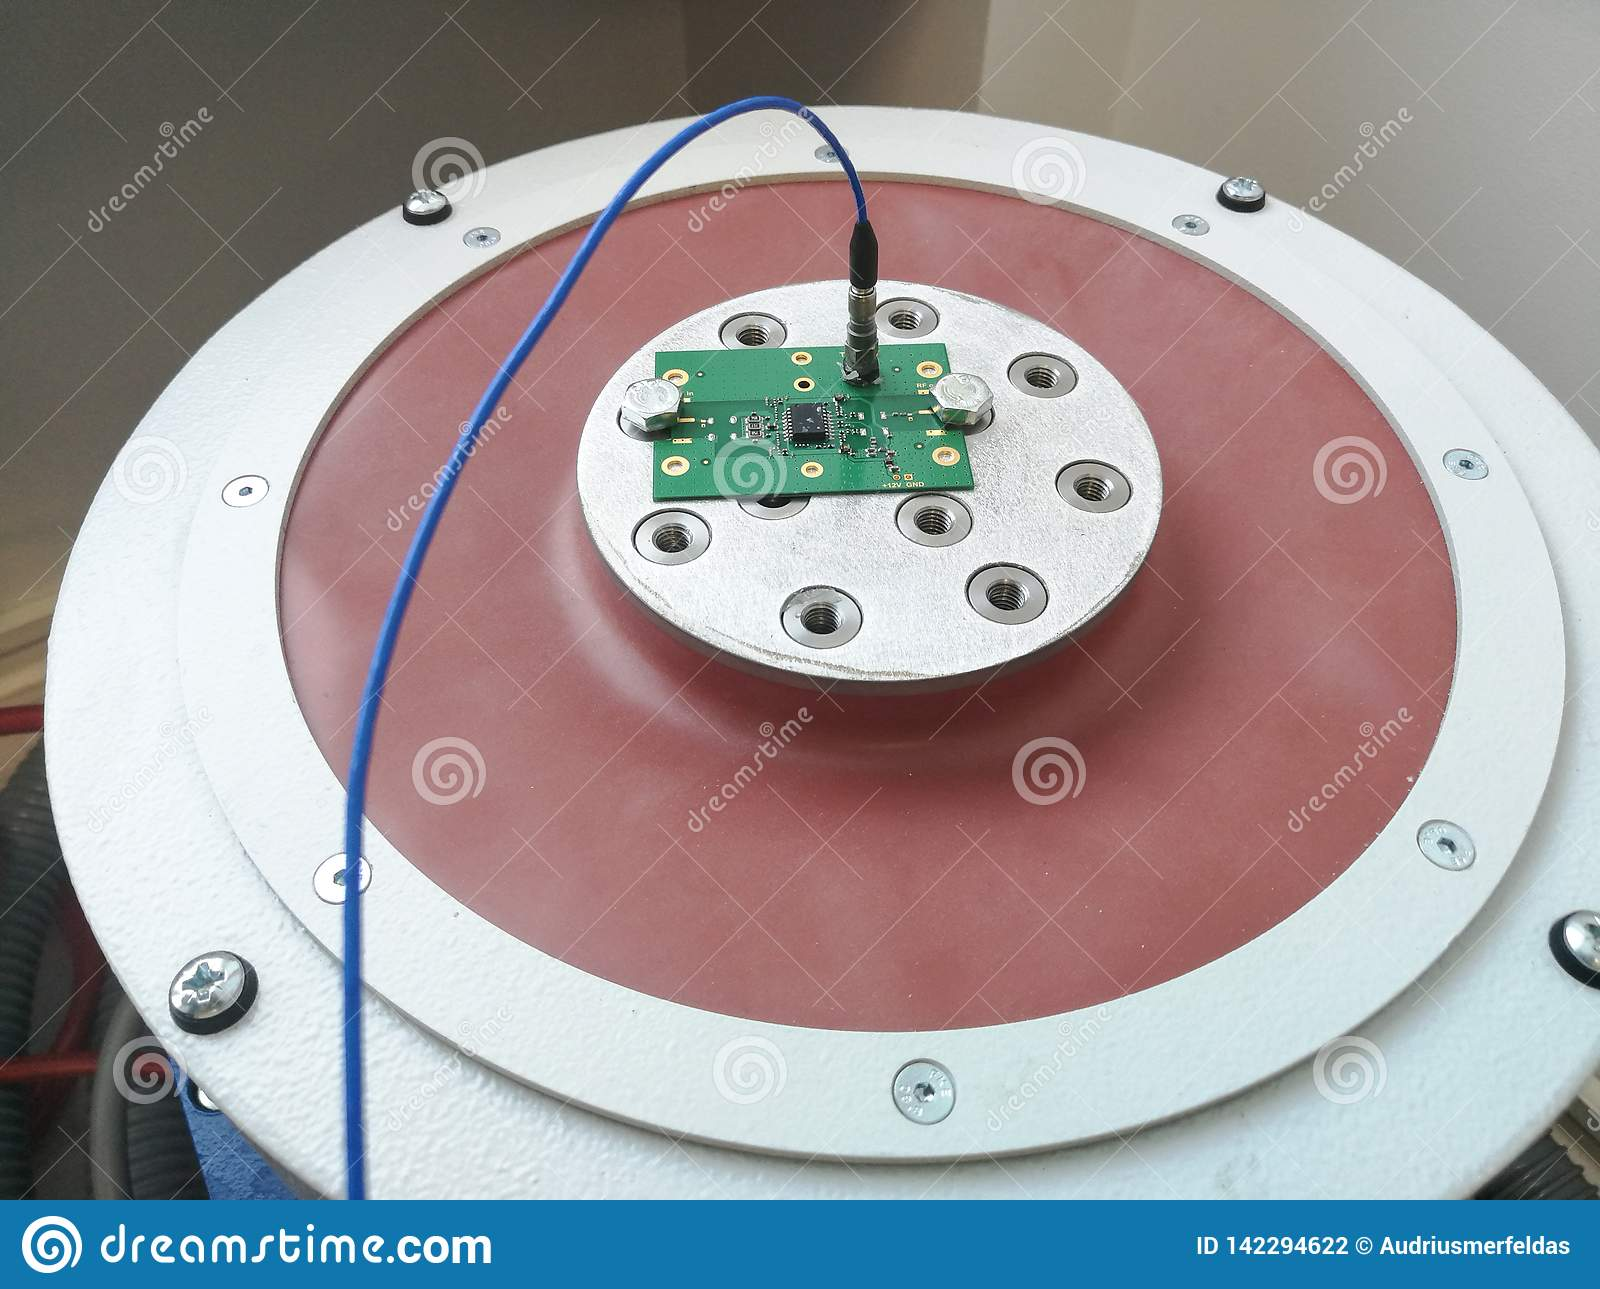 Electronics PCB Prepared For Reliability Testing Stock Photo